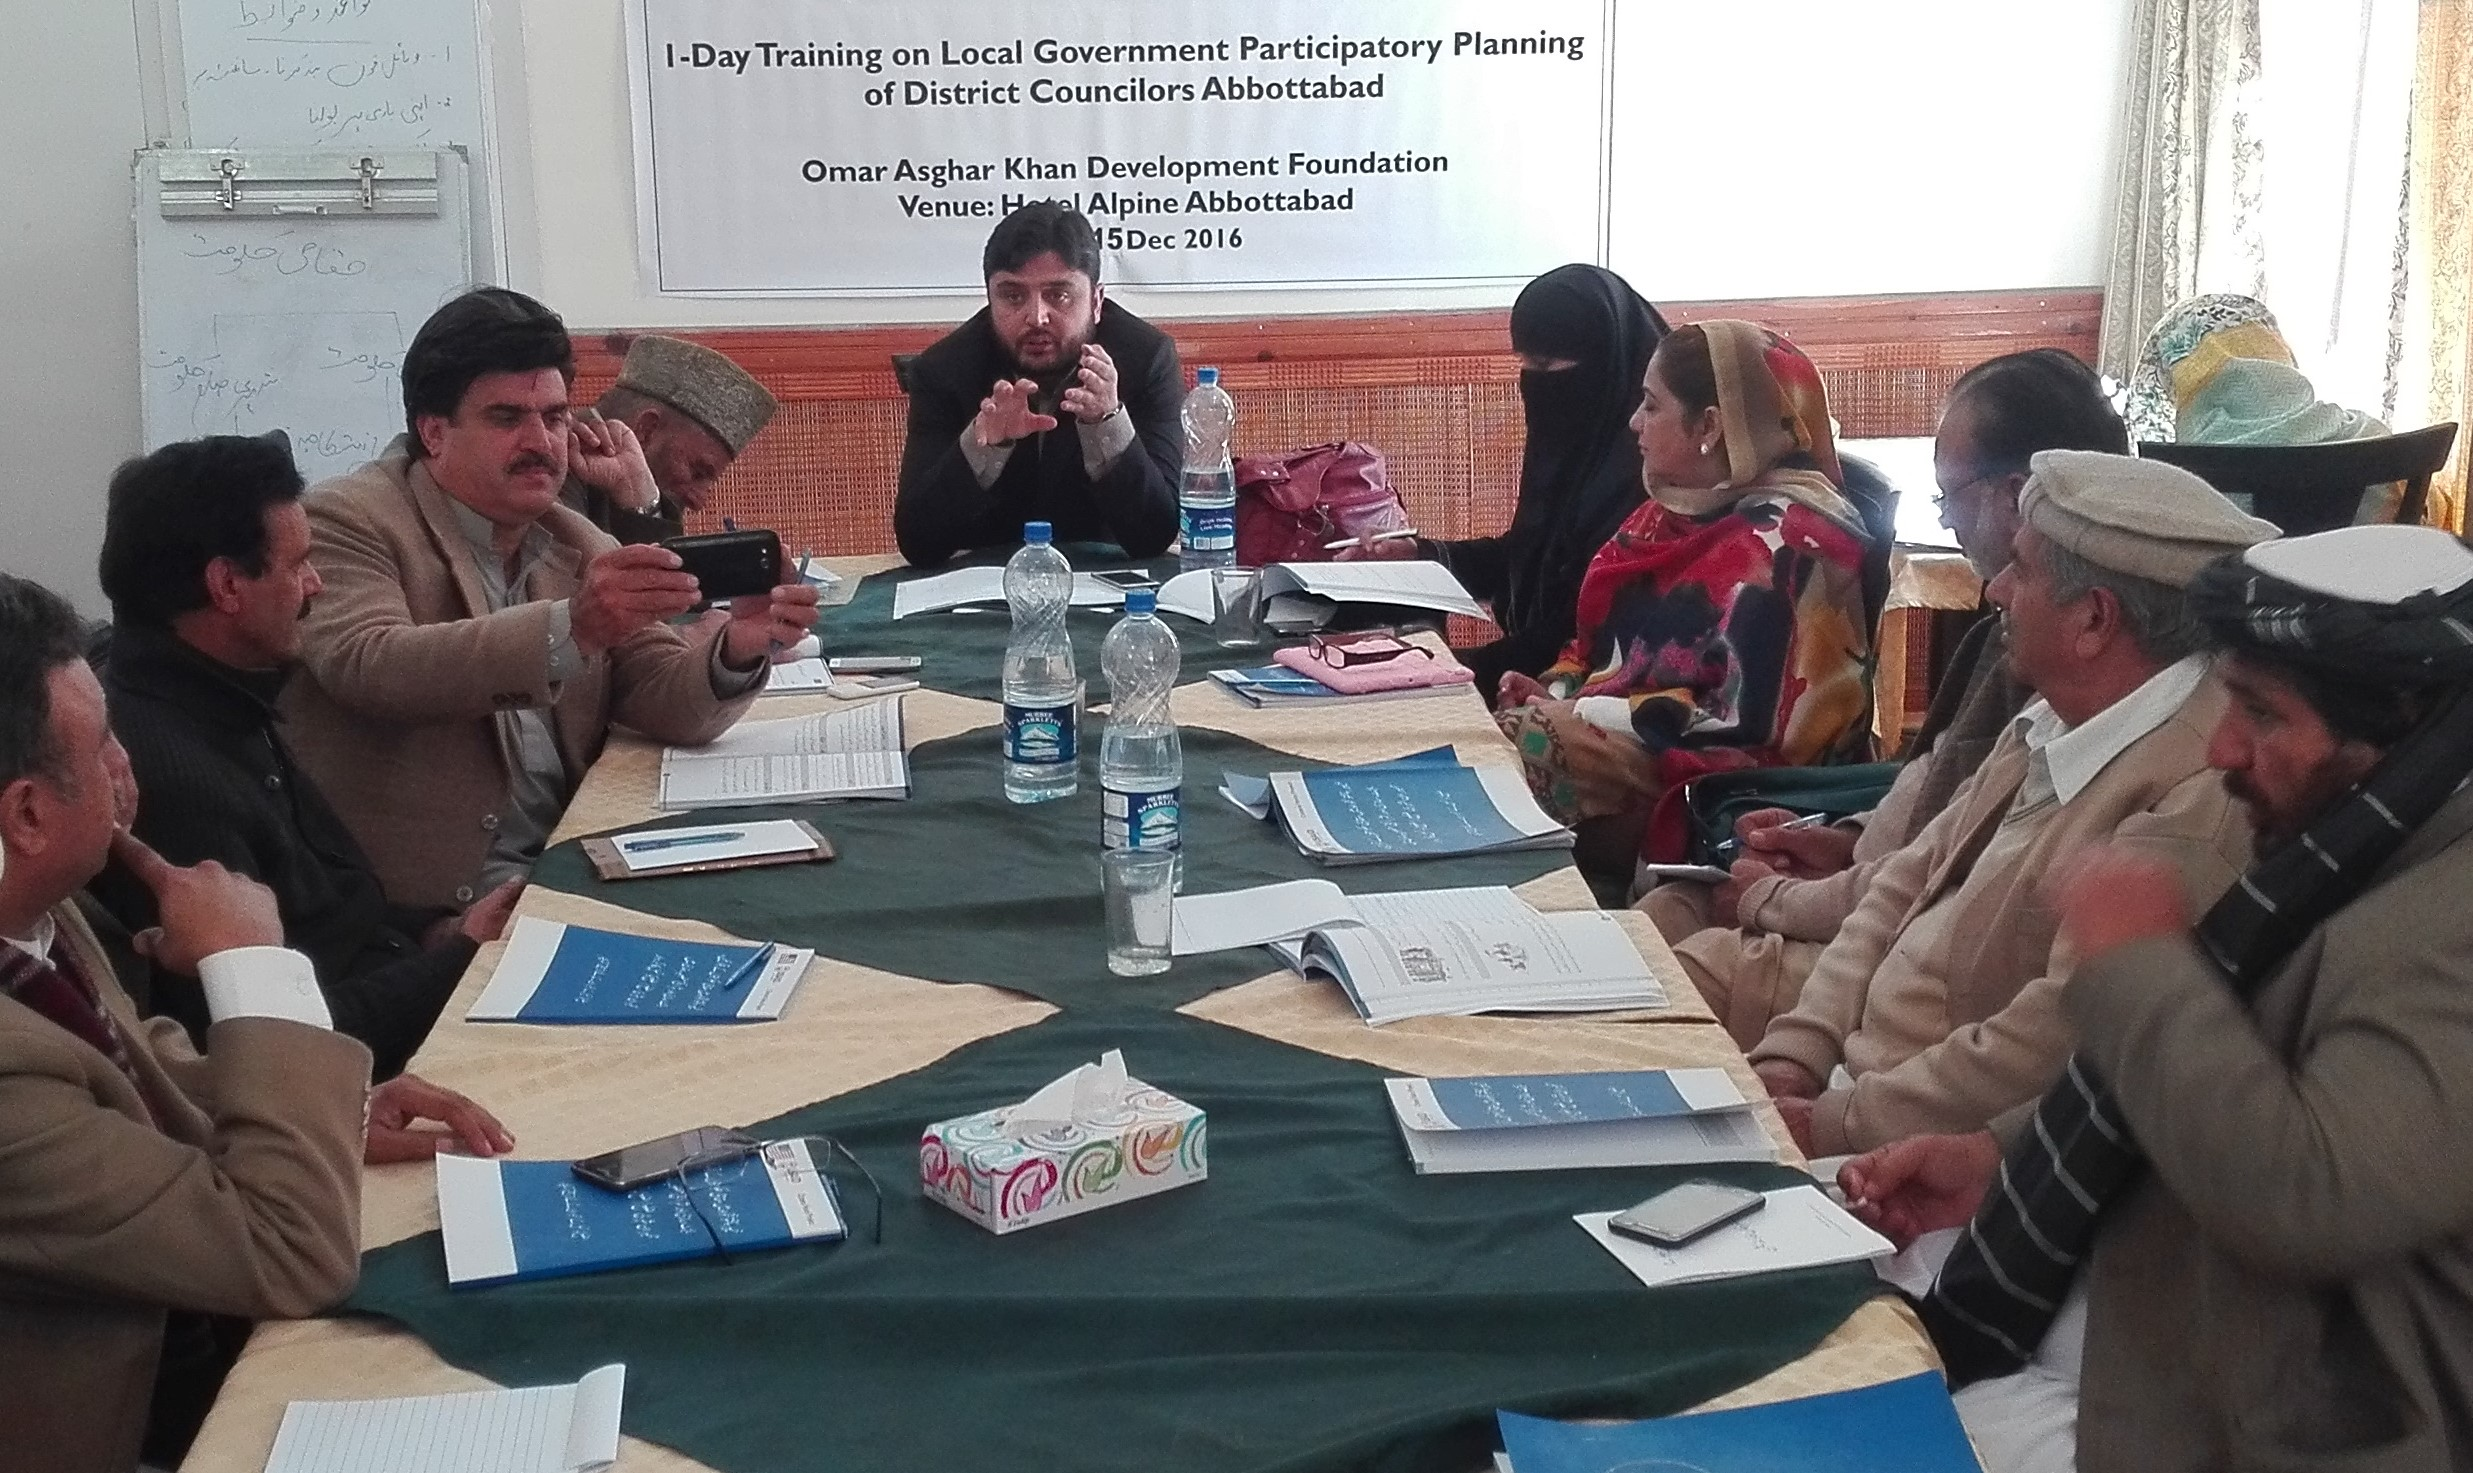 The Foundation Trained Nearly 2,000 Elected Councilors In District Abbottabad.